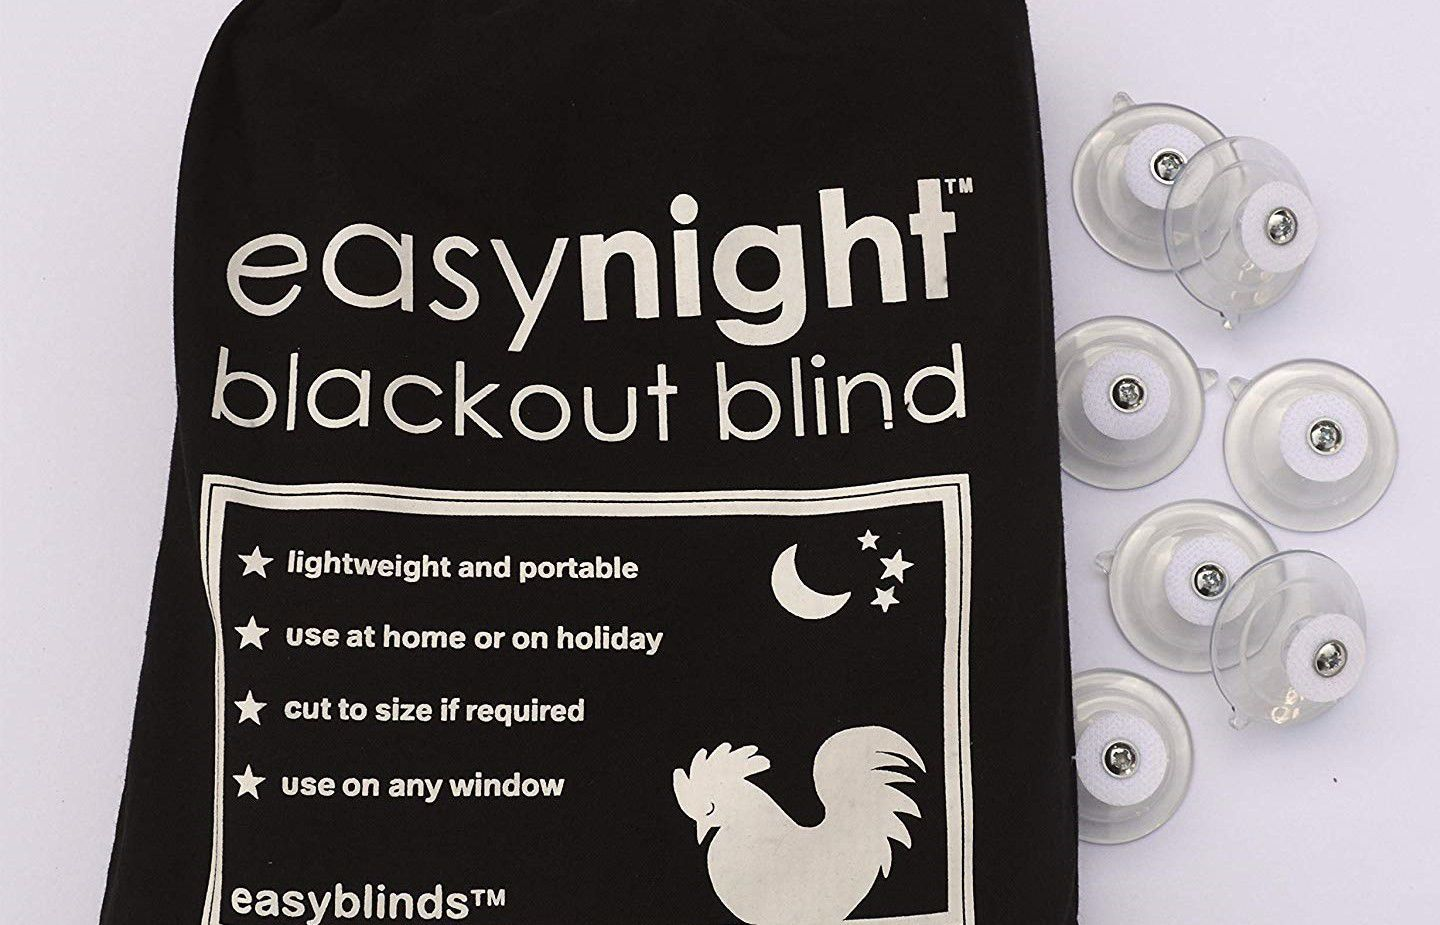 easynight blackout blind accessories Fabric Fasteners and suction cups